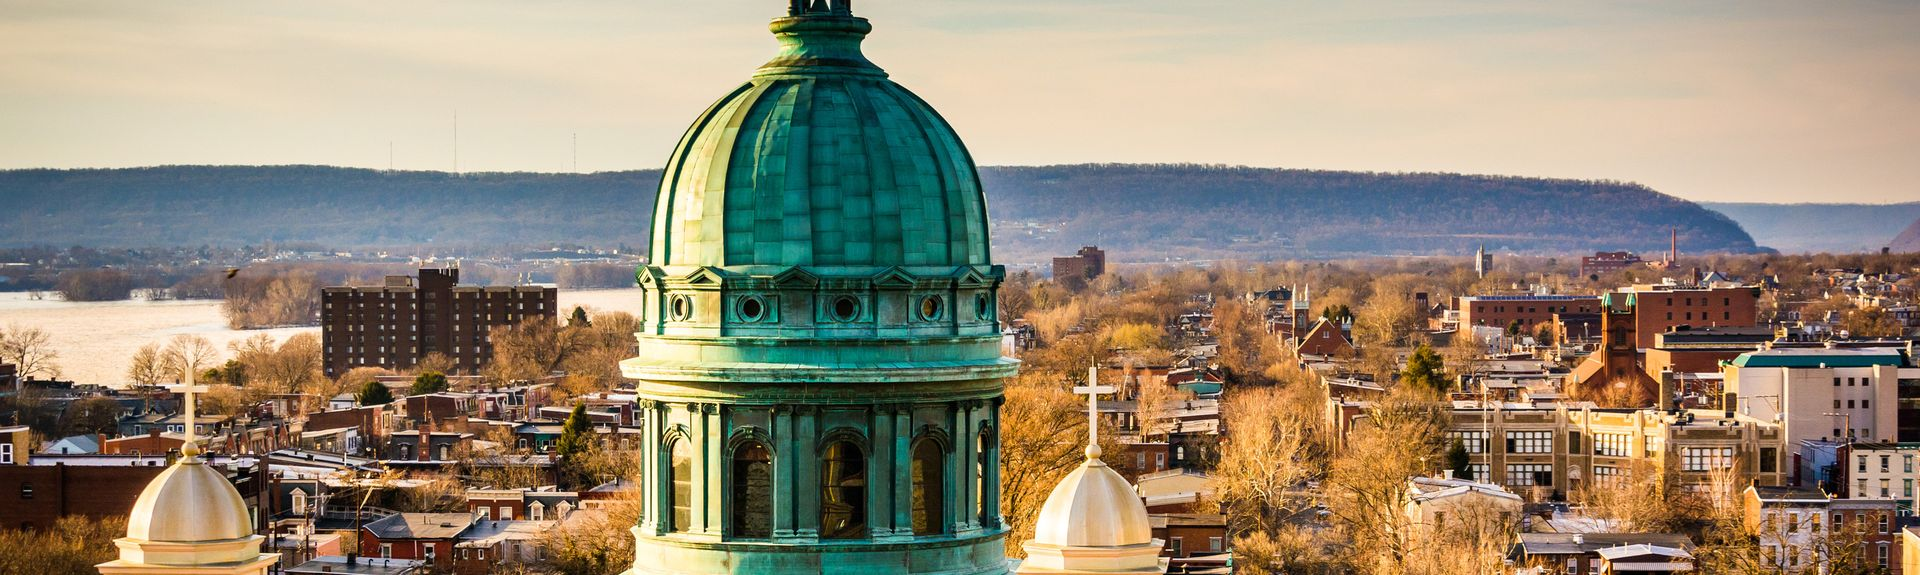 Harrisburg, Pennsylvania, United States of America